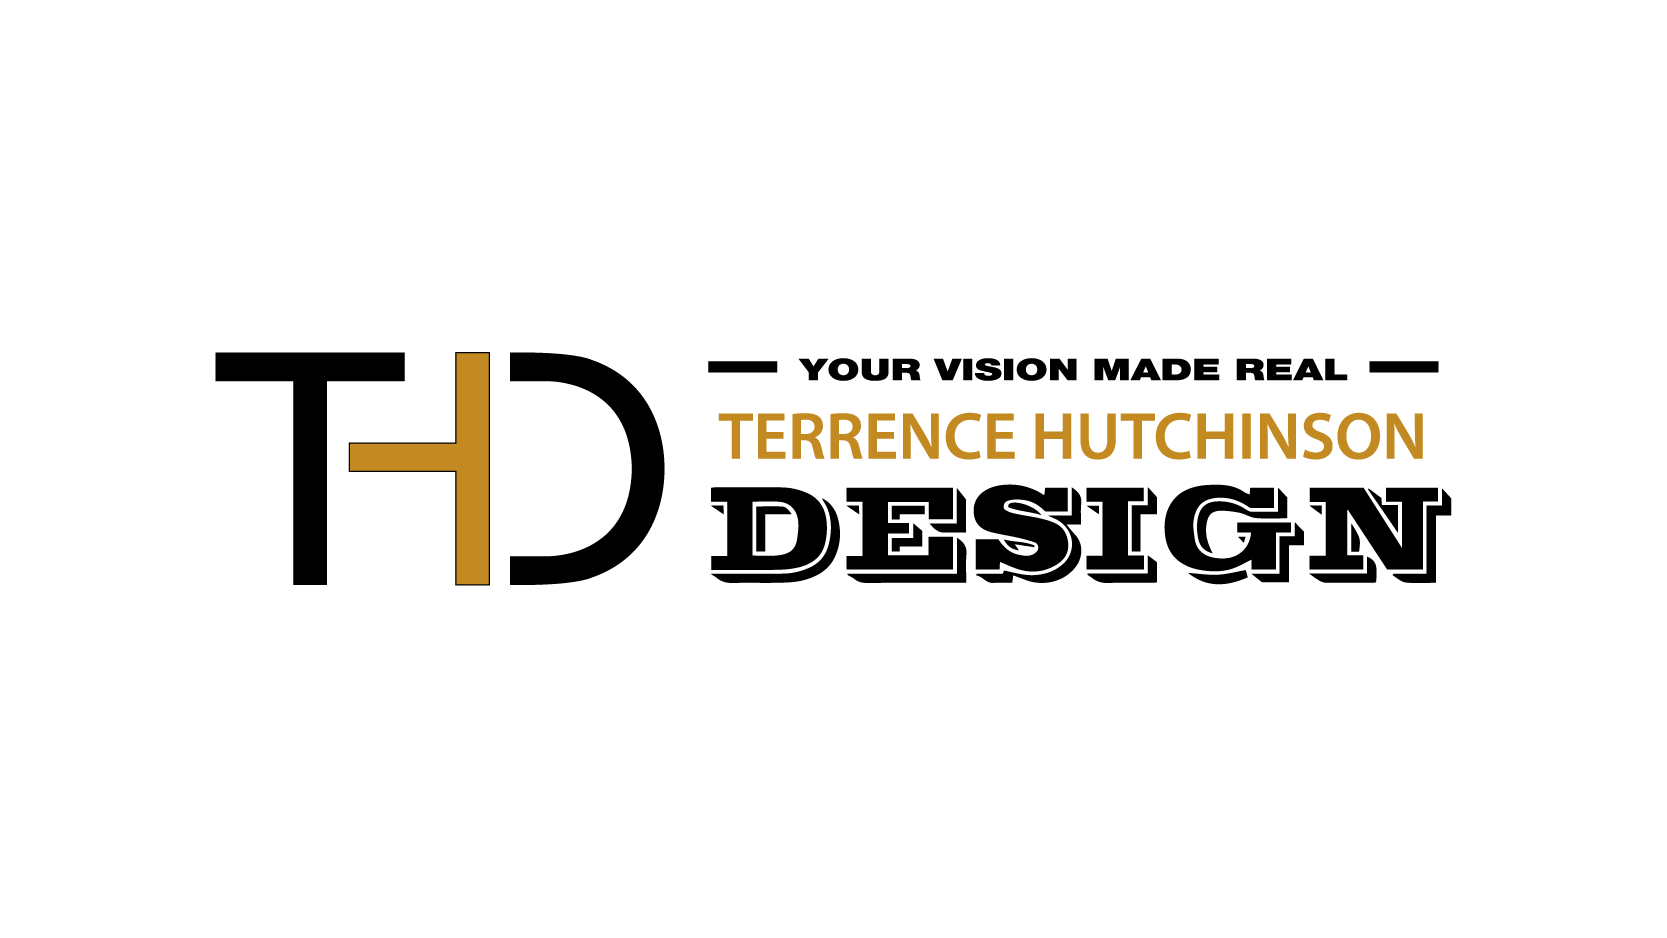 TERRENCE HUTCHINSON DESIGN